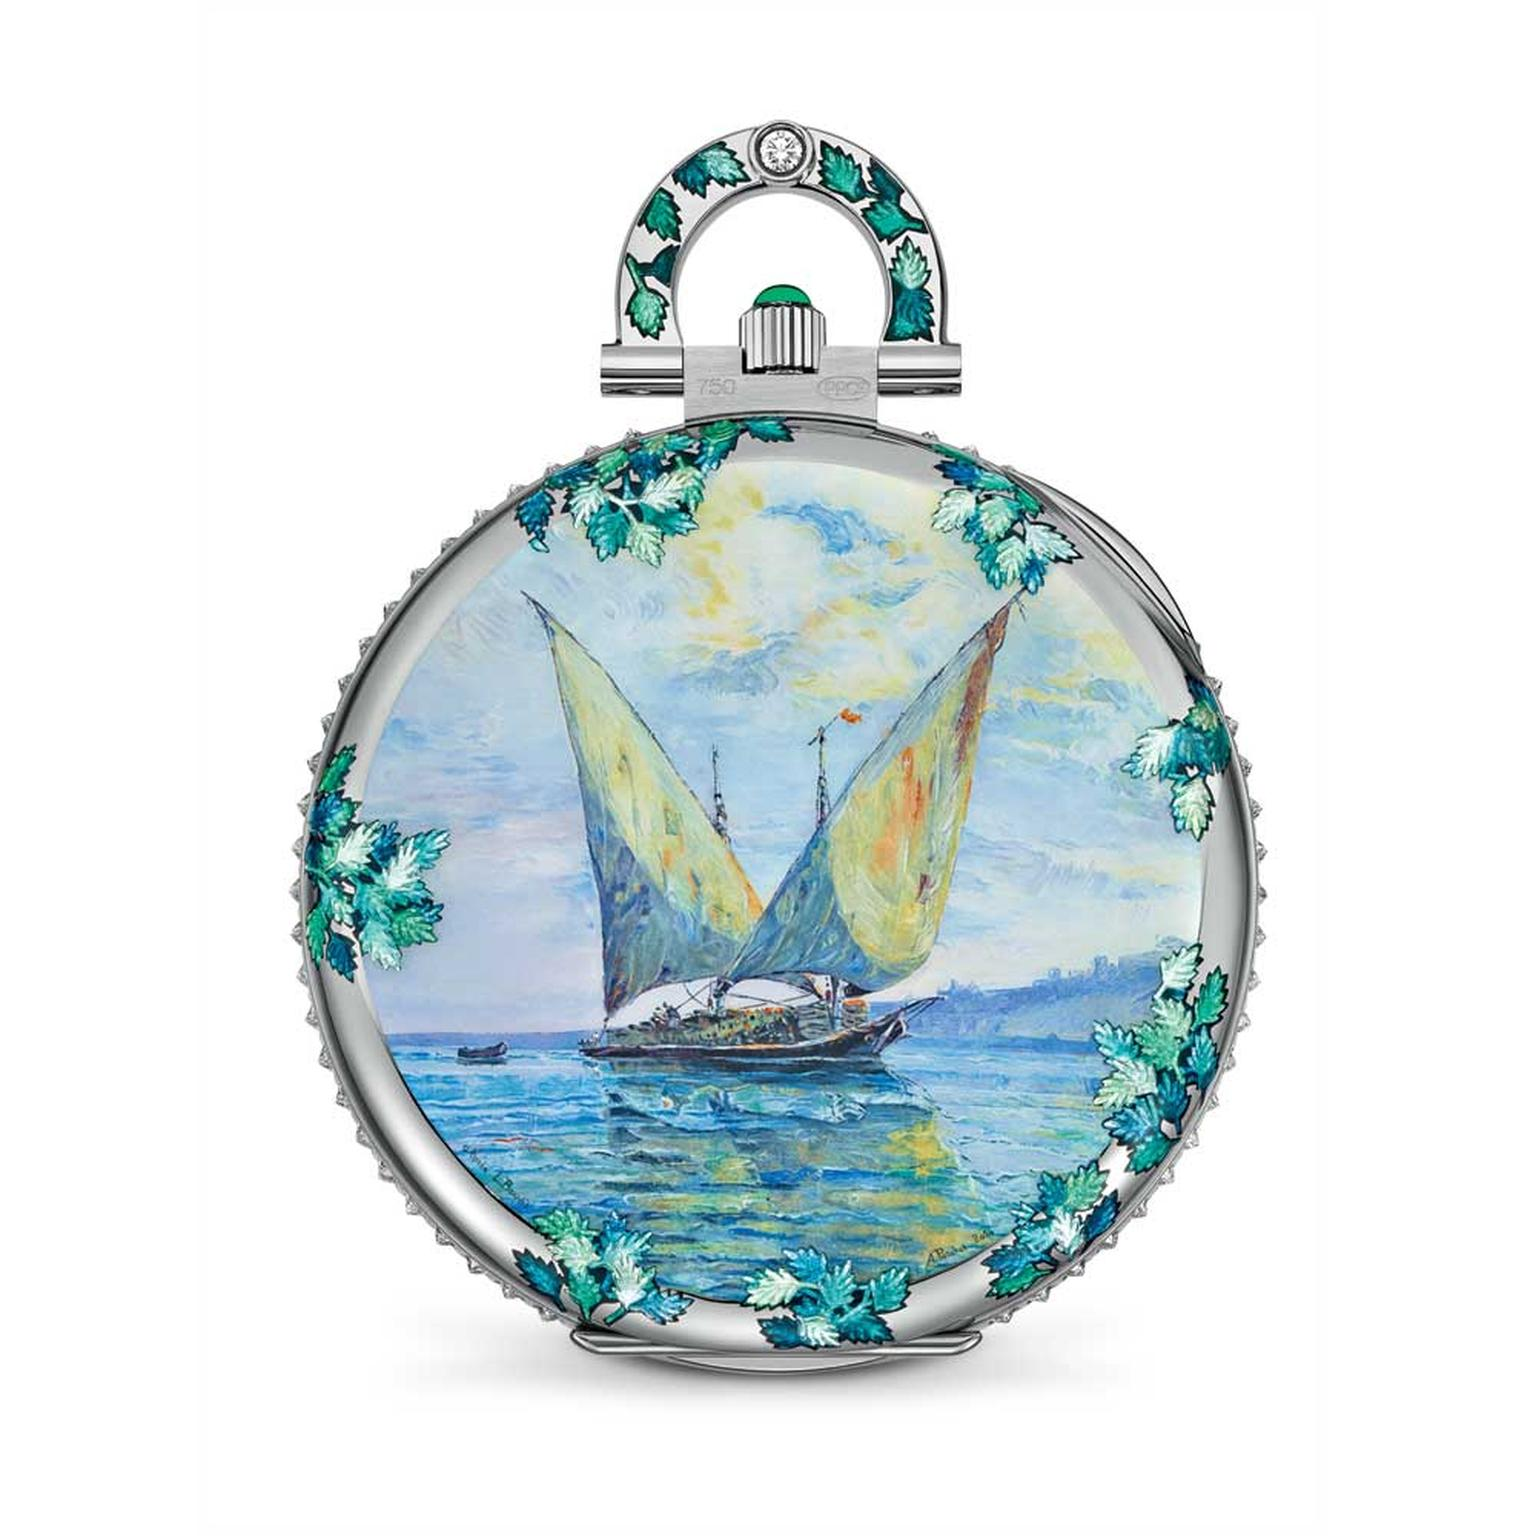 Patek Philippe miniature painting enamel pocket watch